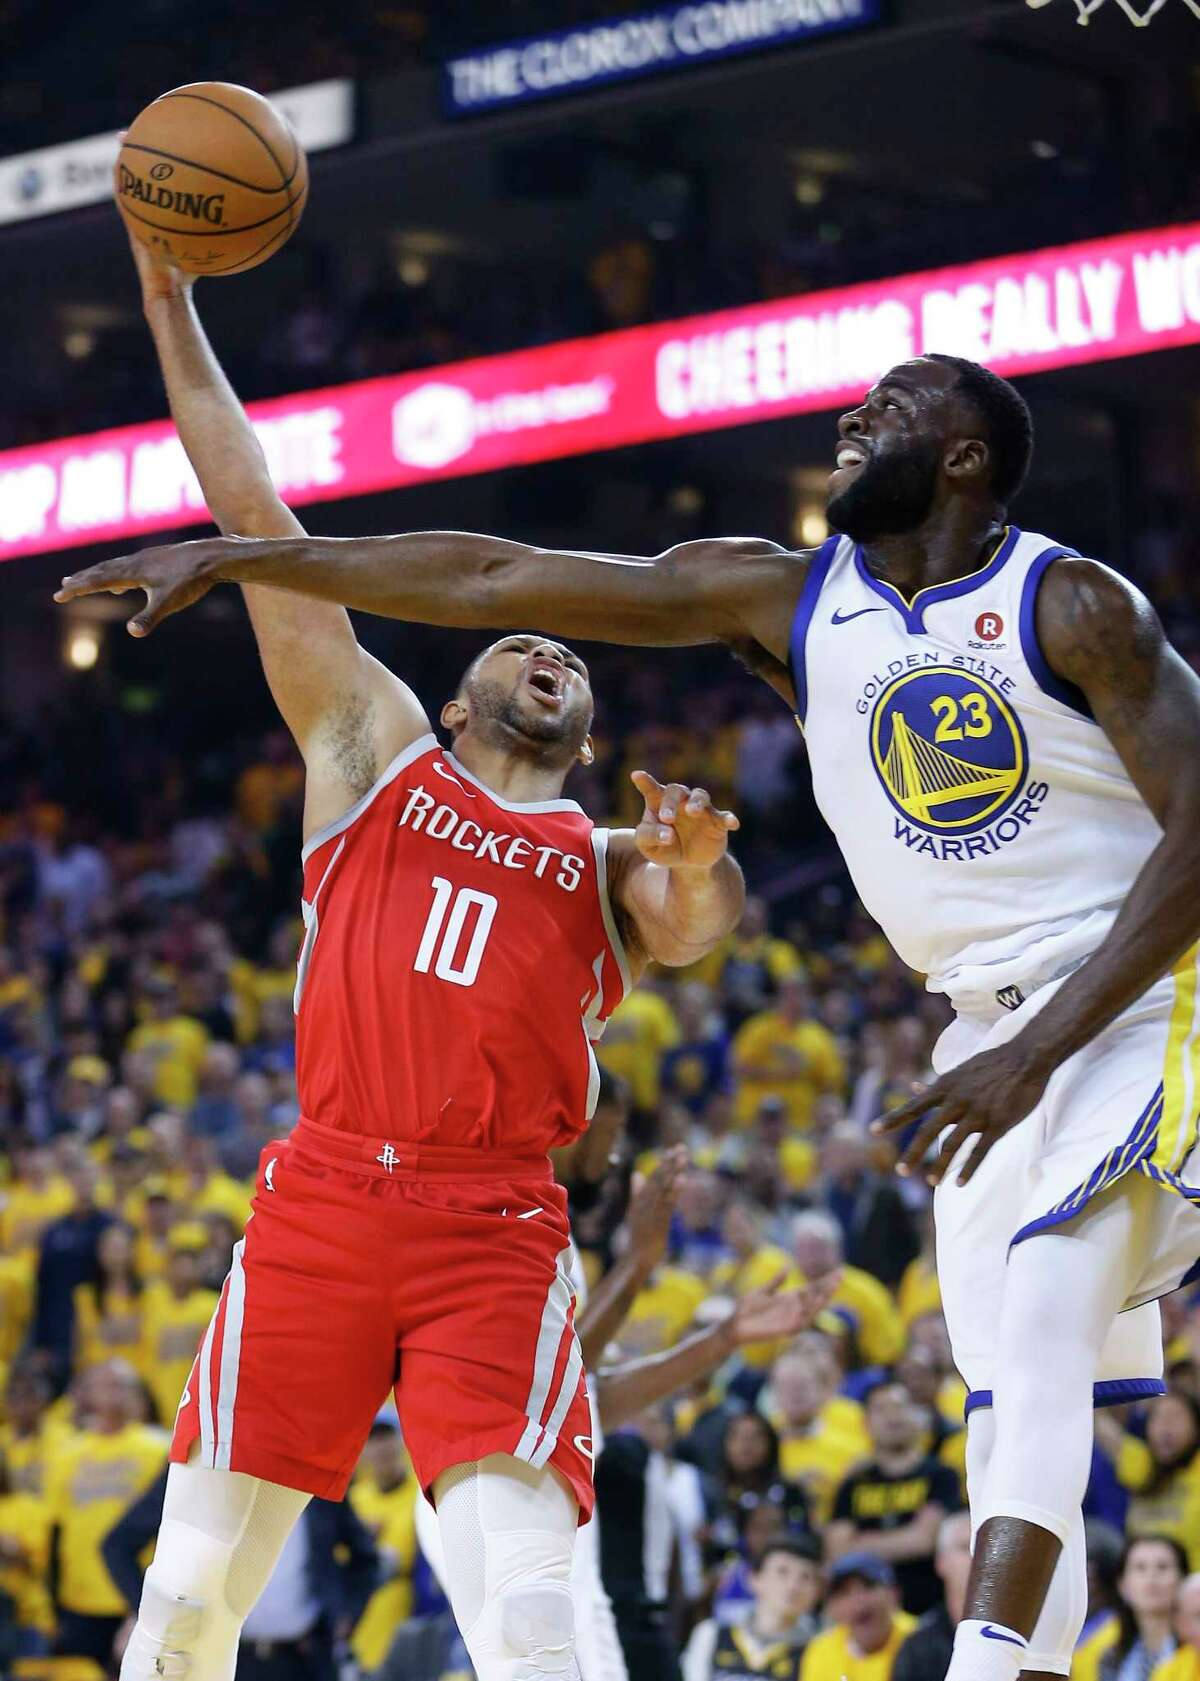 Houston Rockets guard Eric Gordon (10) takes a shot against Golden State Warriors forward Draymond Green (23) during the first half of Game 3 of the Western Conference Finals at Oracle Arena Sunday, May 20, 2018 in Oakland.